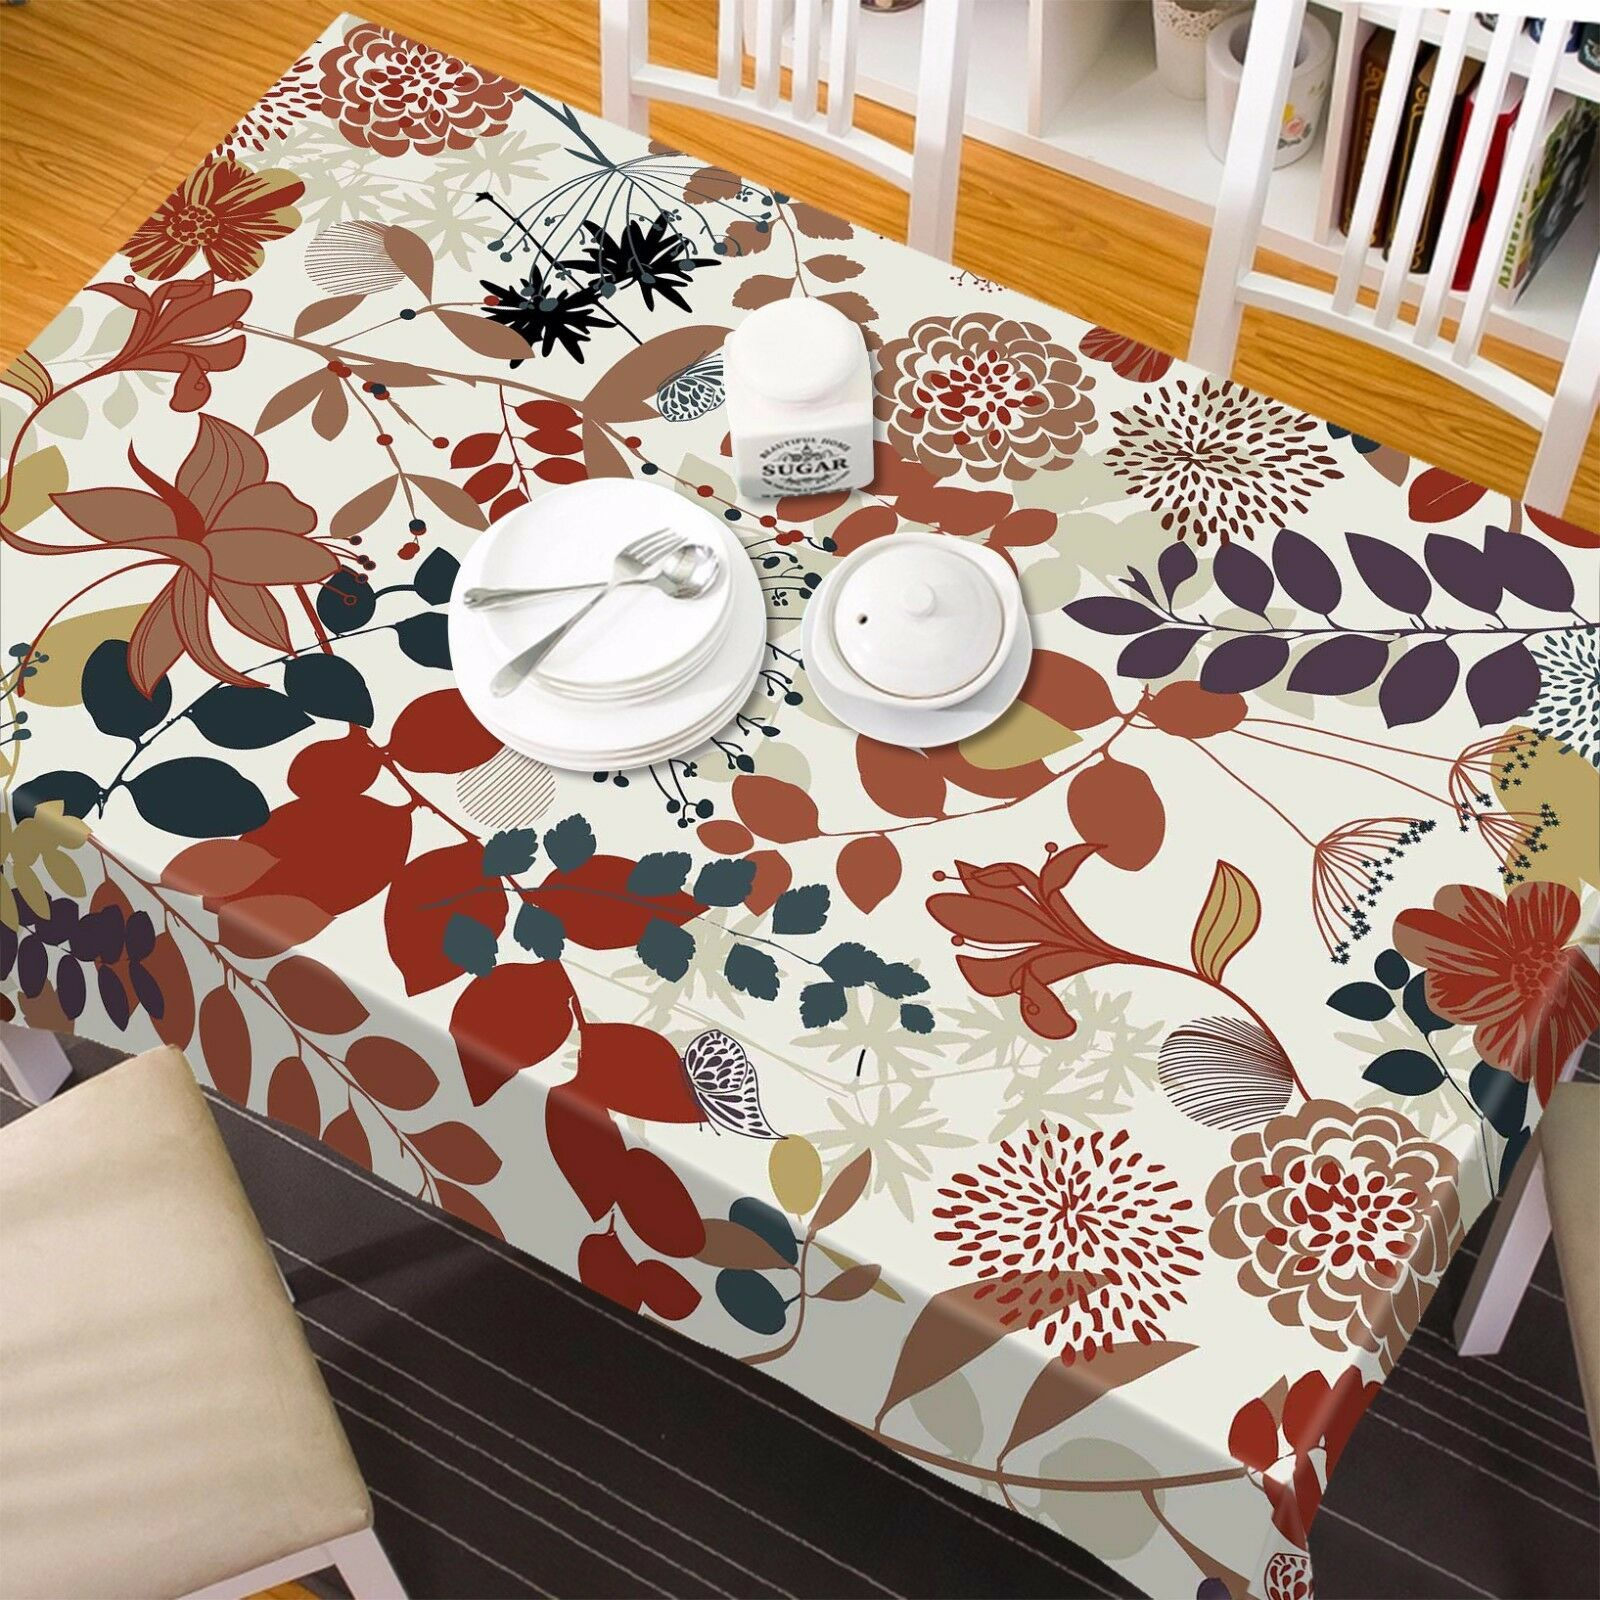 3D rouge leaf 82 Tablecloth Table Cover Cloth Birthday Party Event AJ WALLPAPER AU